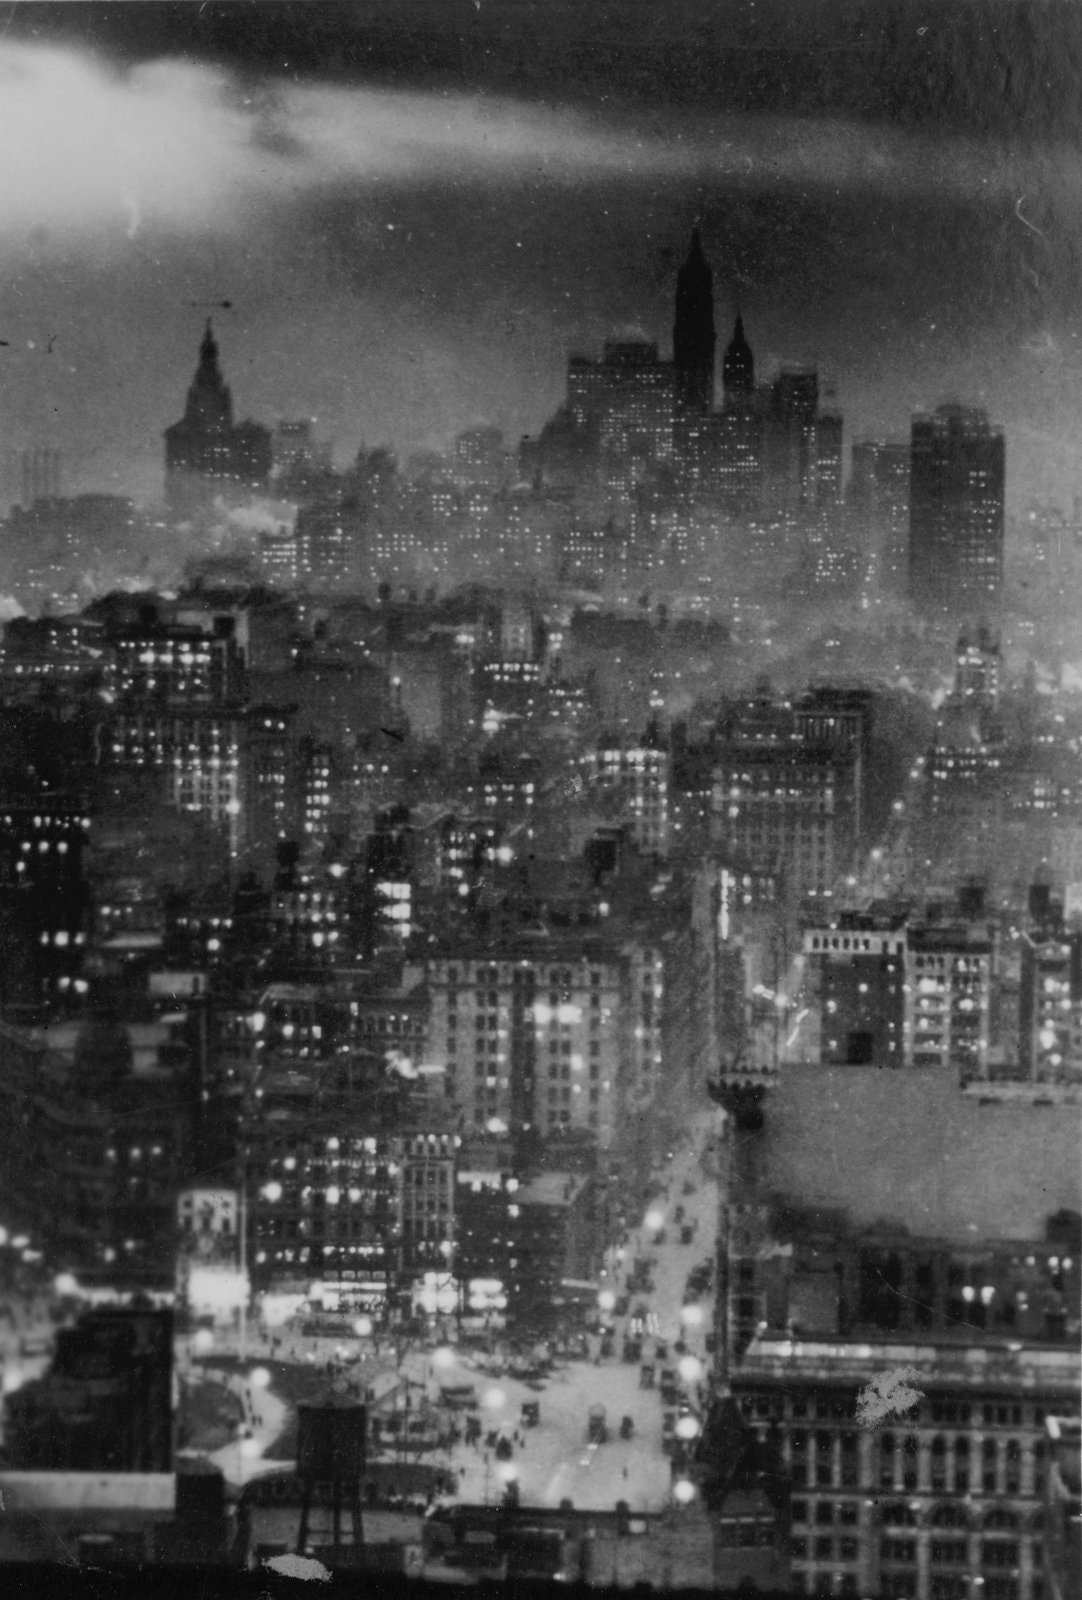 Night view of lower New York City from the Metropolitan Tower (c1920)